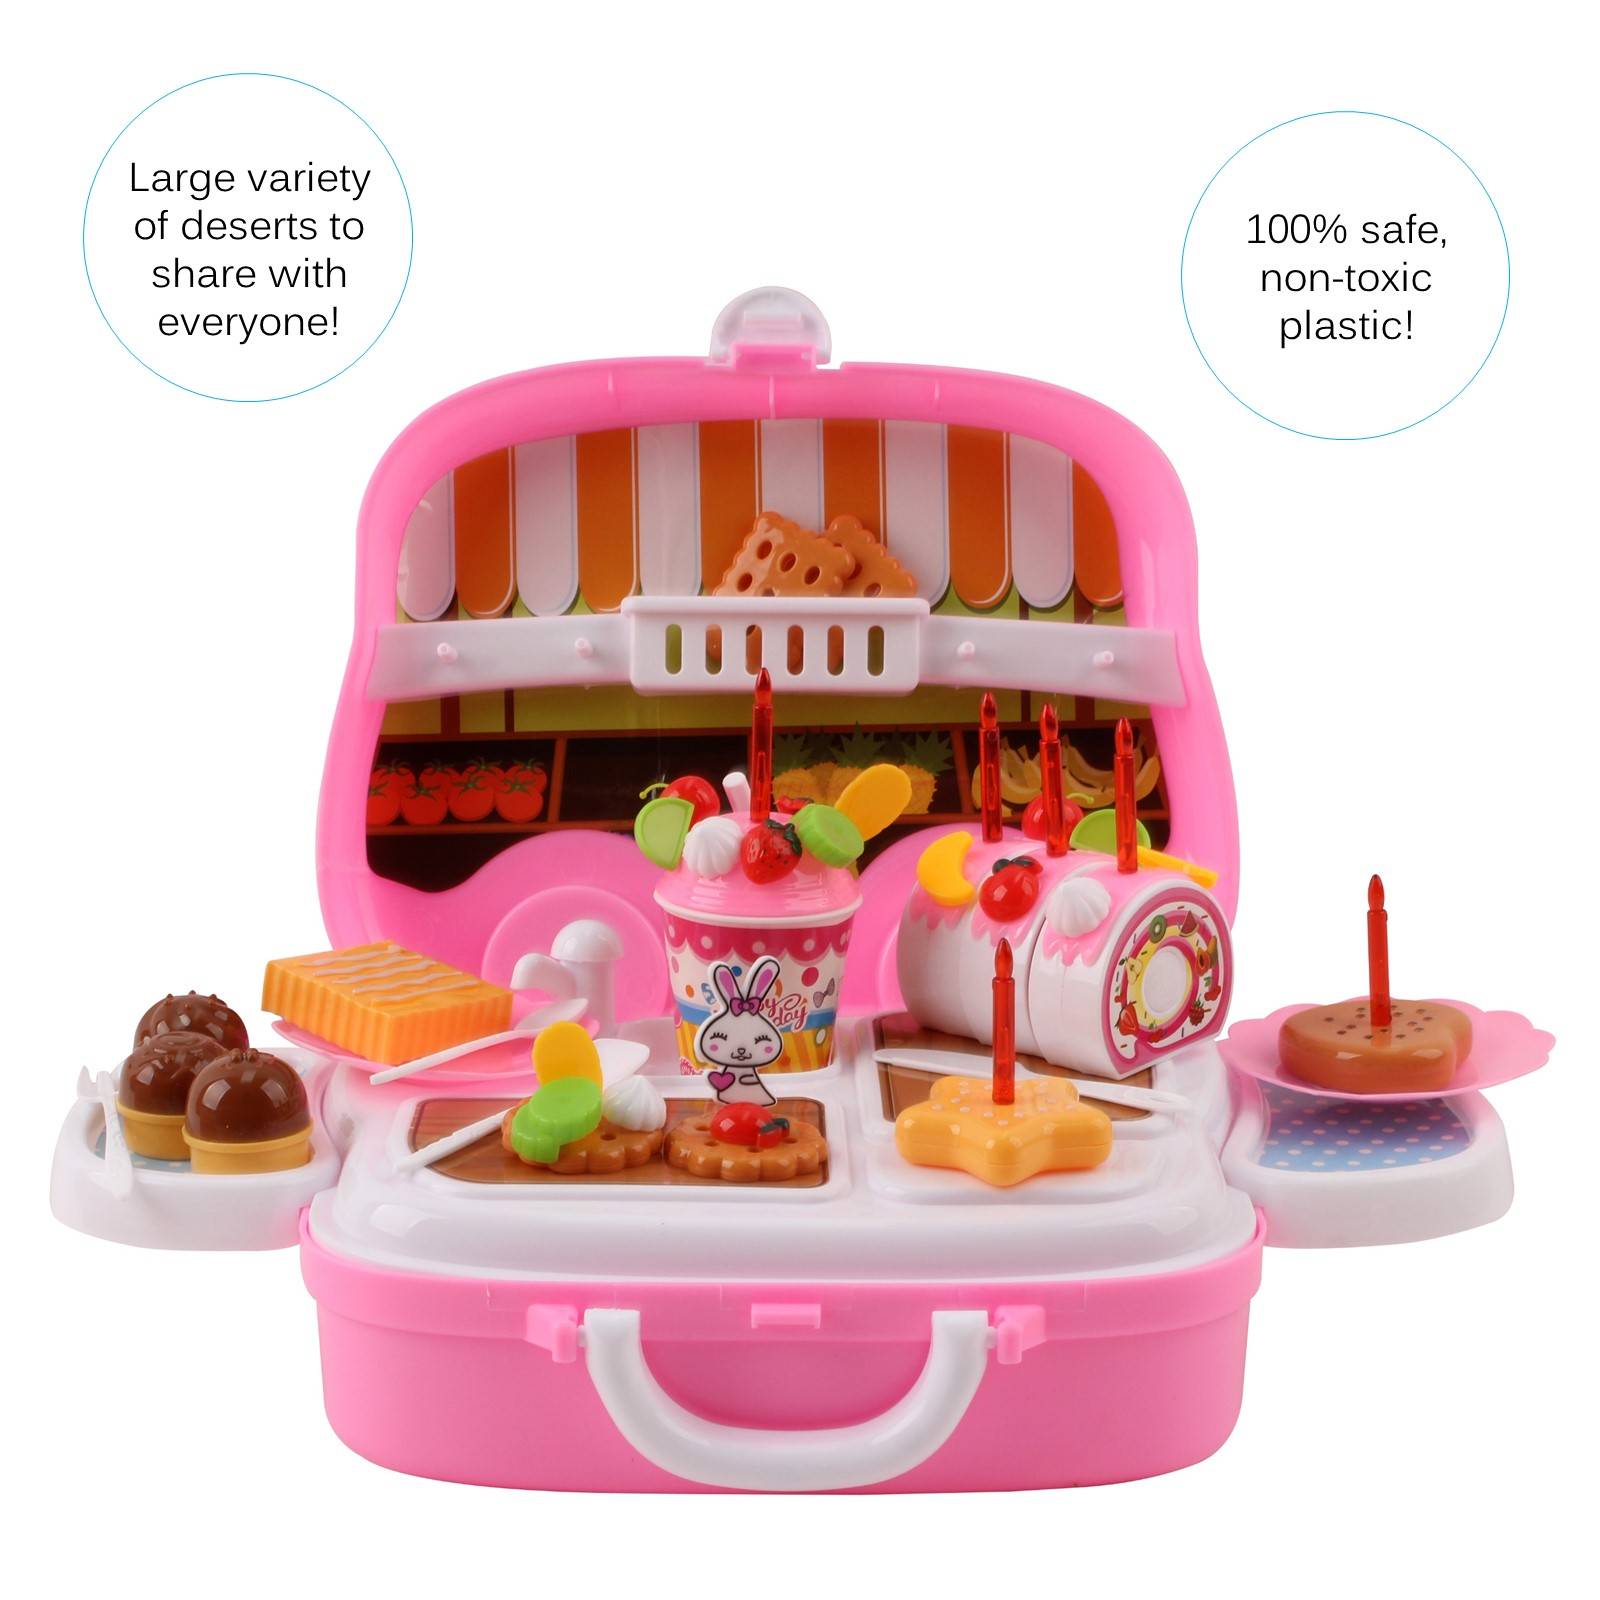 39 Pieces Large Portable Dessert Stand Birthday Cake Ice Cream Cart Candy Trolley Kitchen With Lights Music Candles Food Toys 3 feet tall Childrens Party Pretend Play Truck Folds Up in Suitcase Playset Appliance Set Pieces